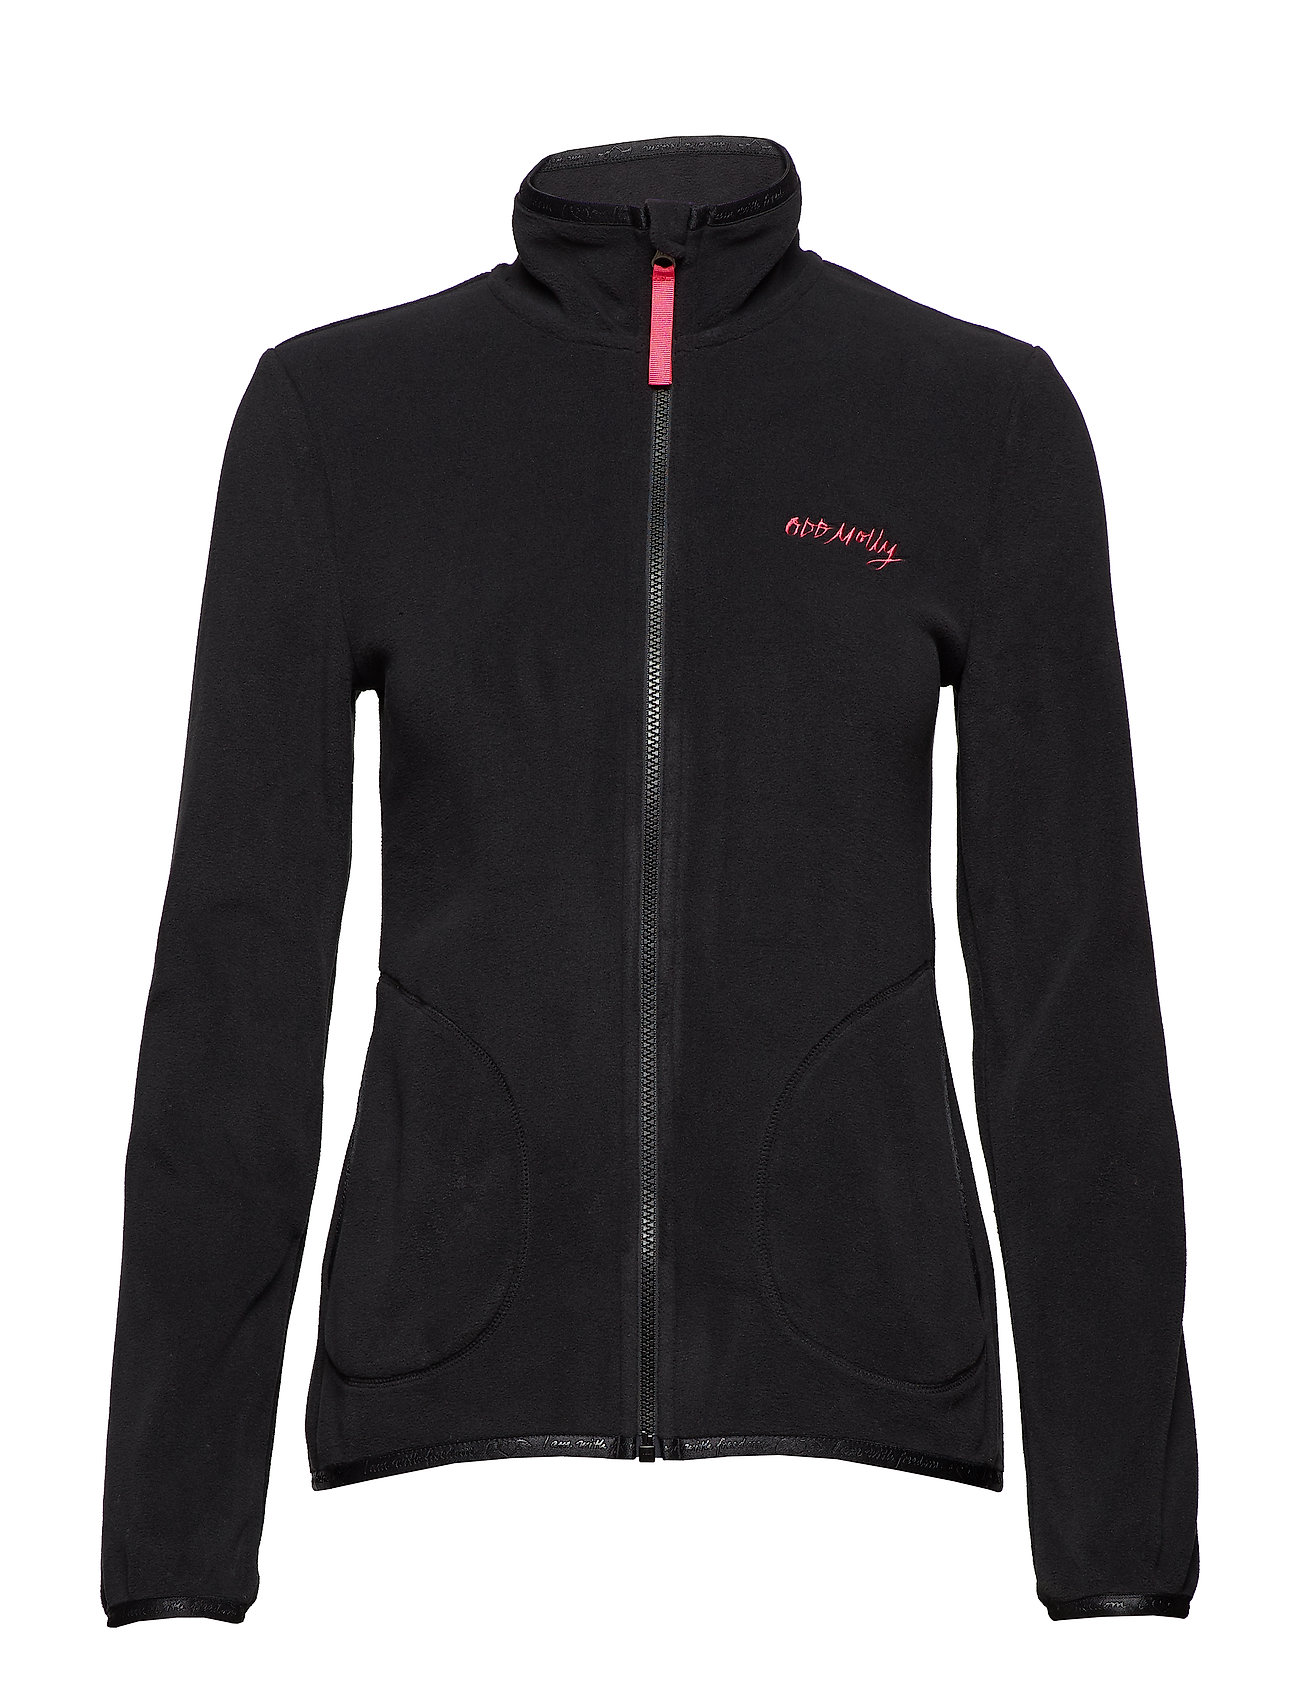 ODD MOLLY ACTIVE WEAR tougher mid layer jacket